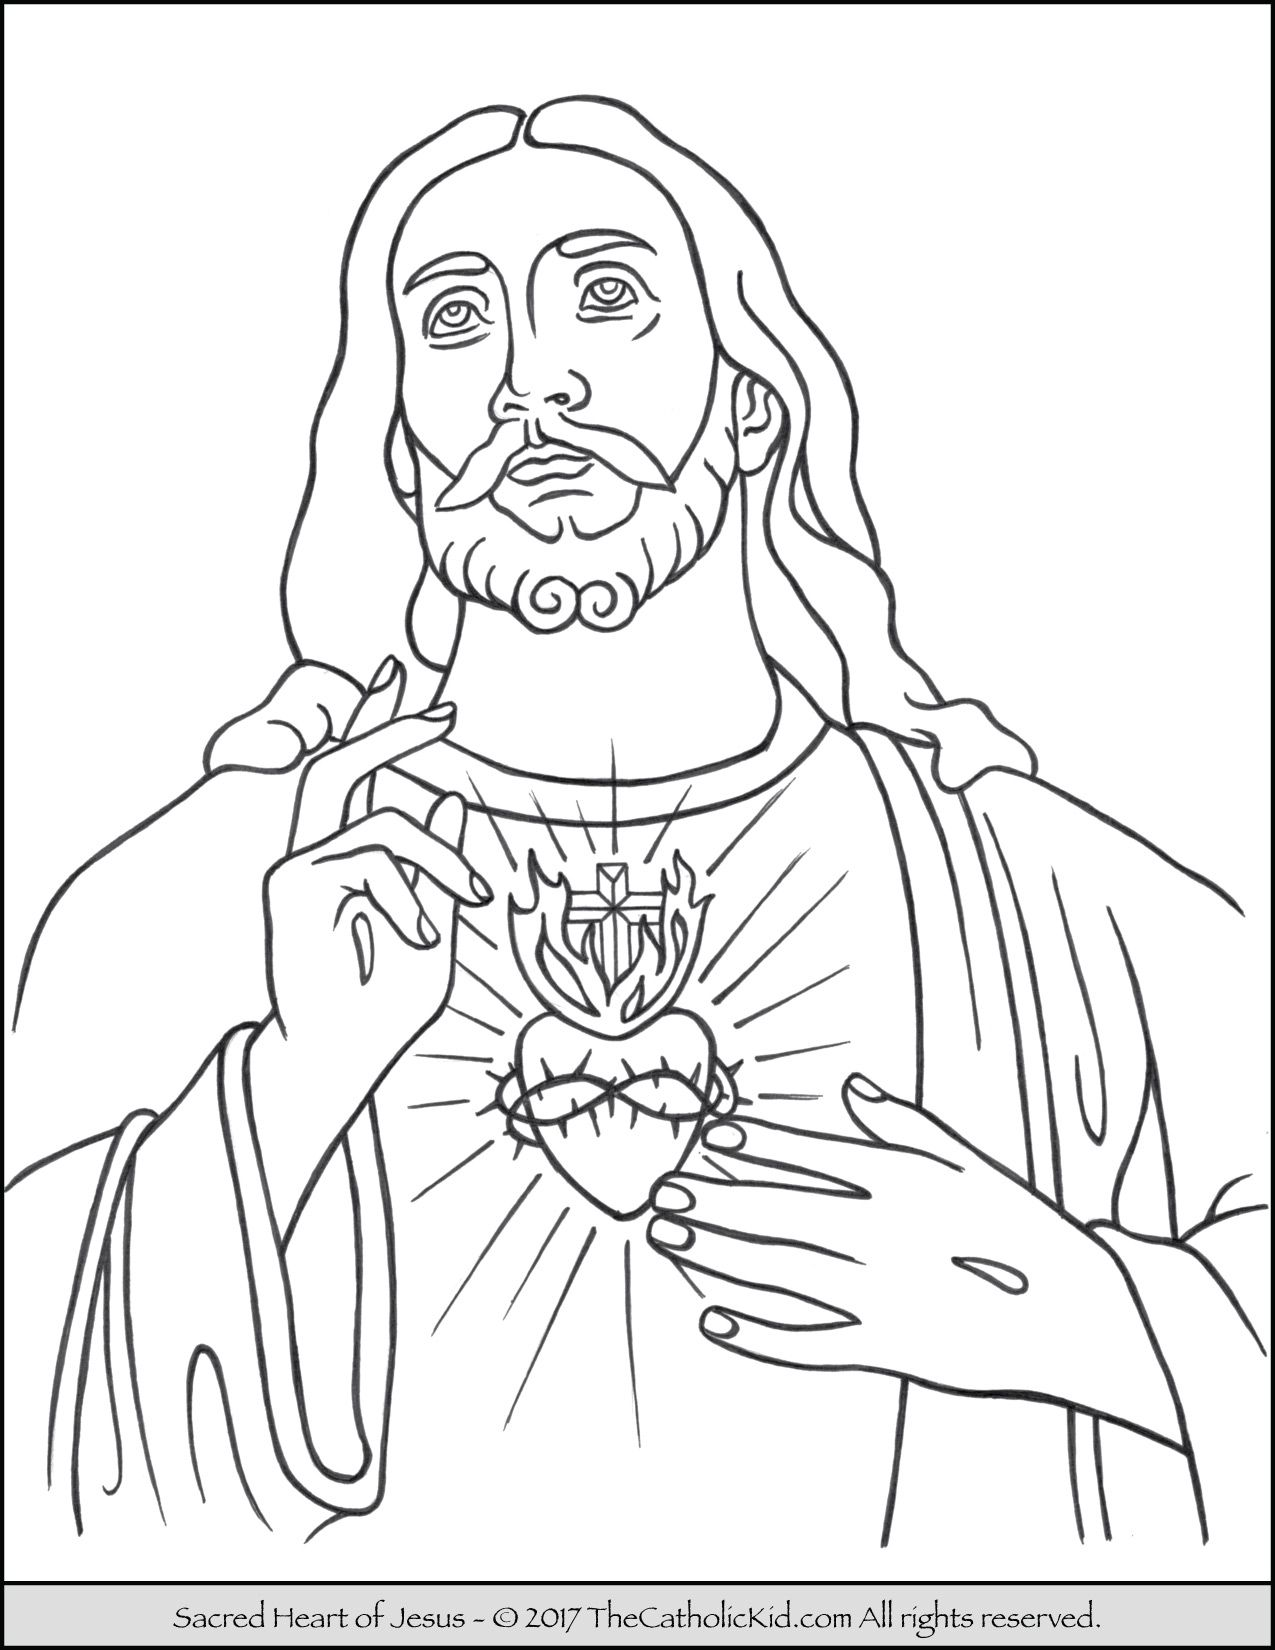 Pin by TheCatholicKid.com on Catholic Coloring Pages for